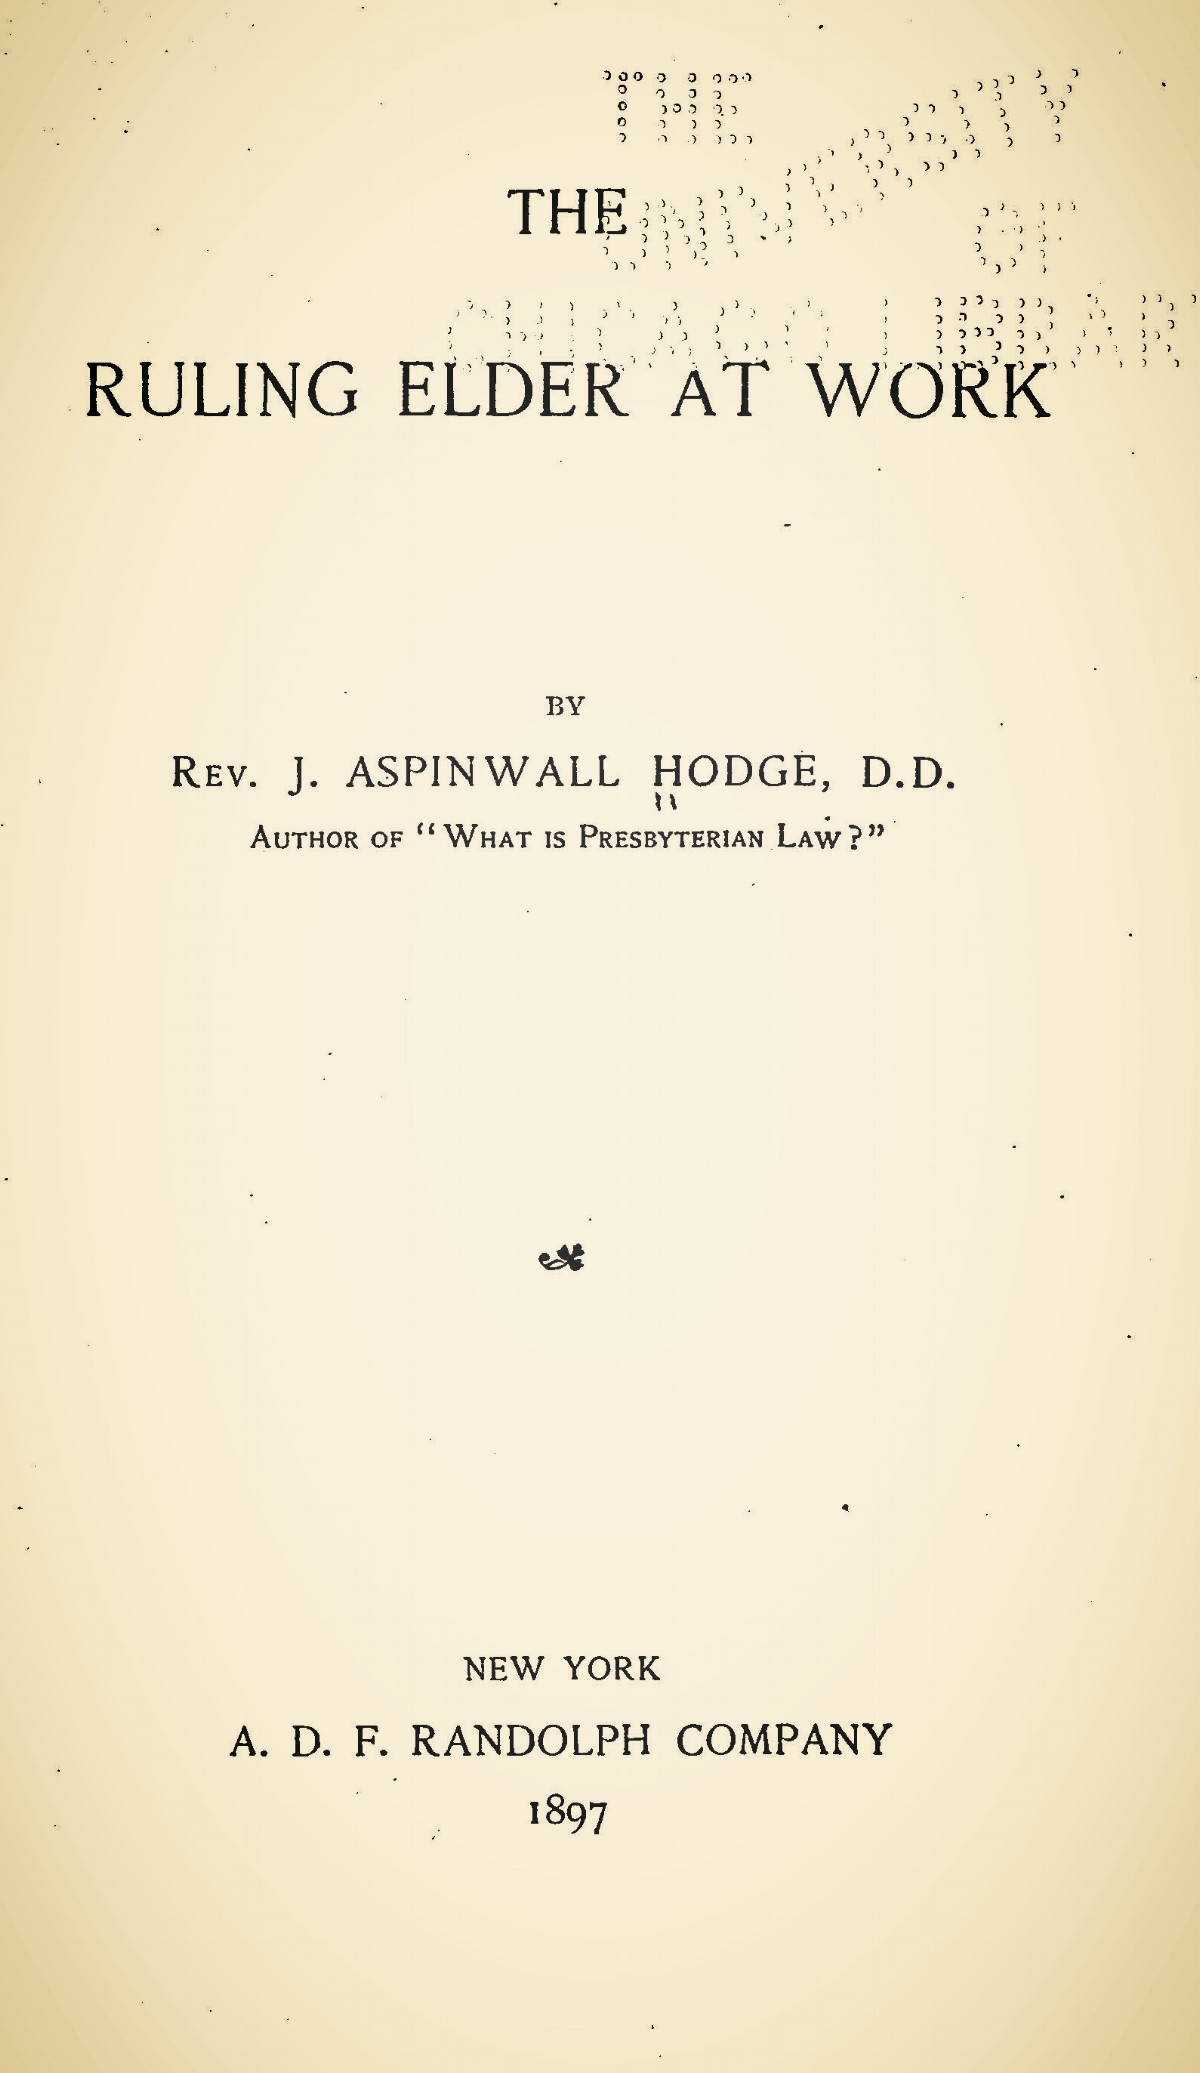 Hodge, John Aspinwall, The Ruling Elder at Work Title Page.jpg